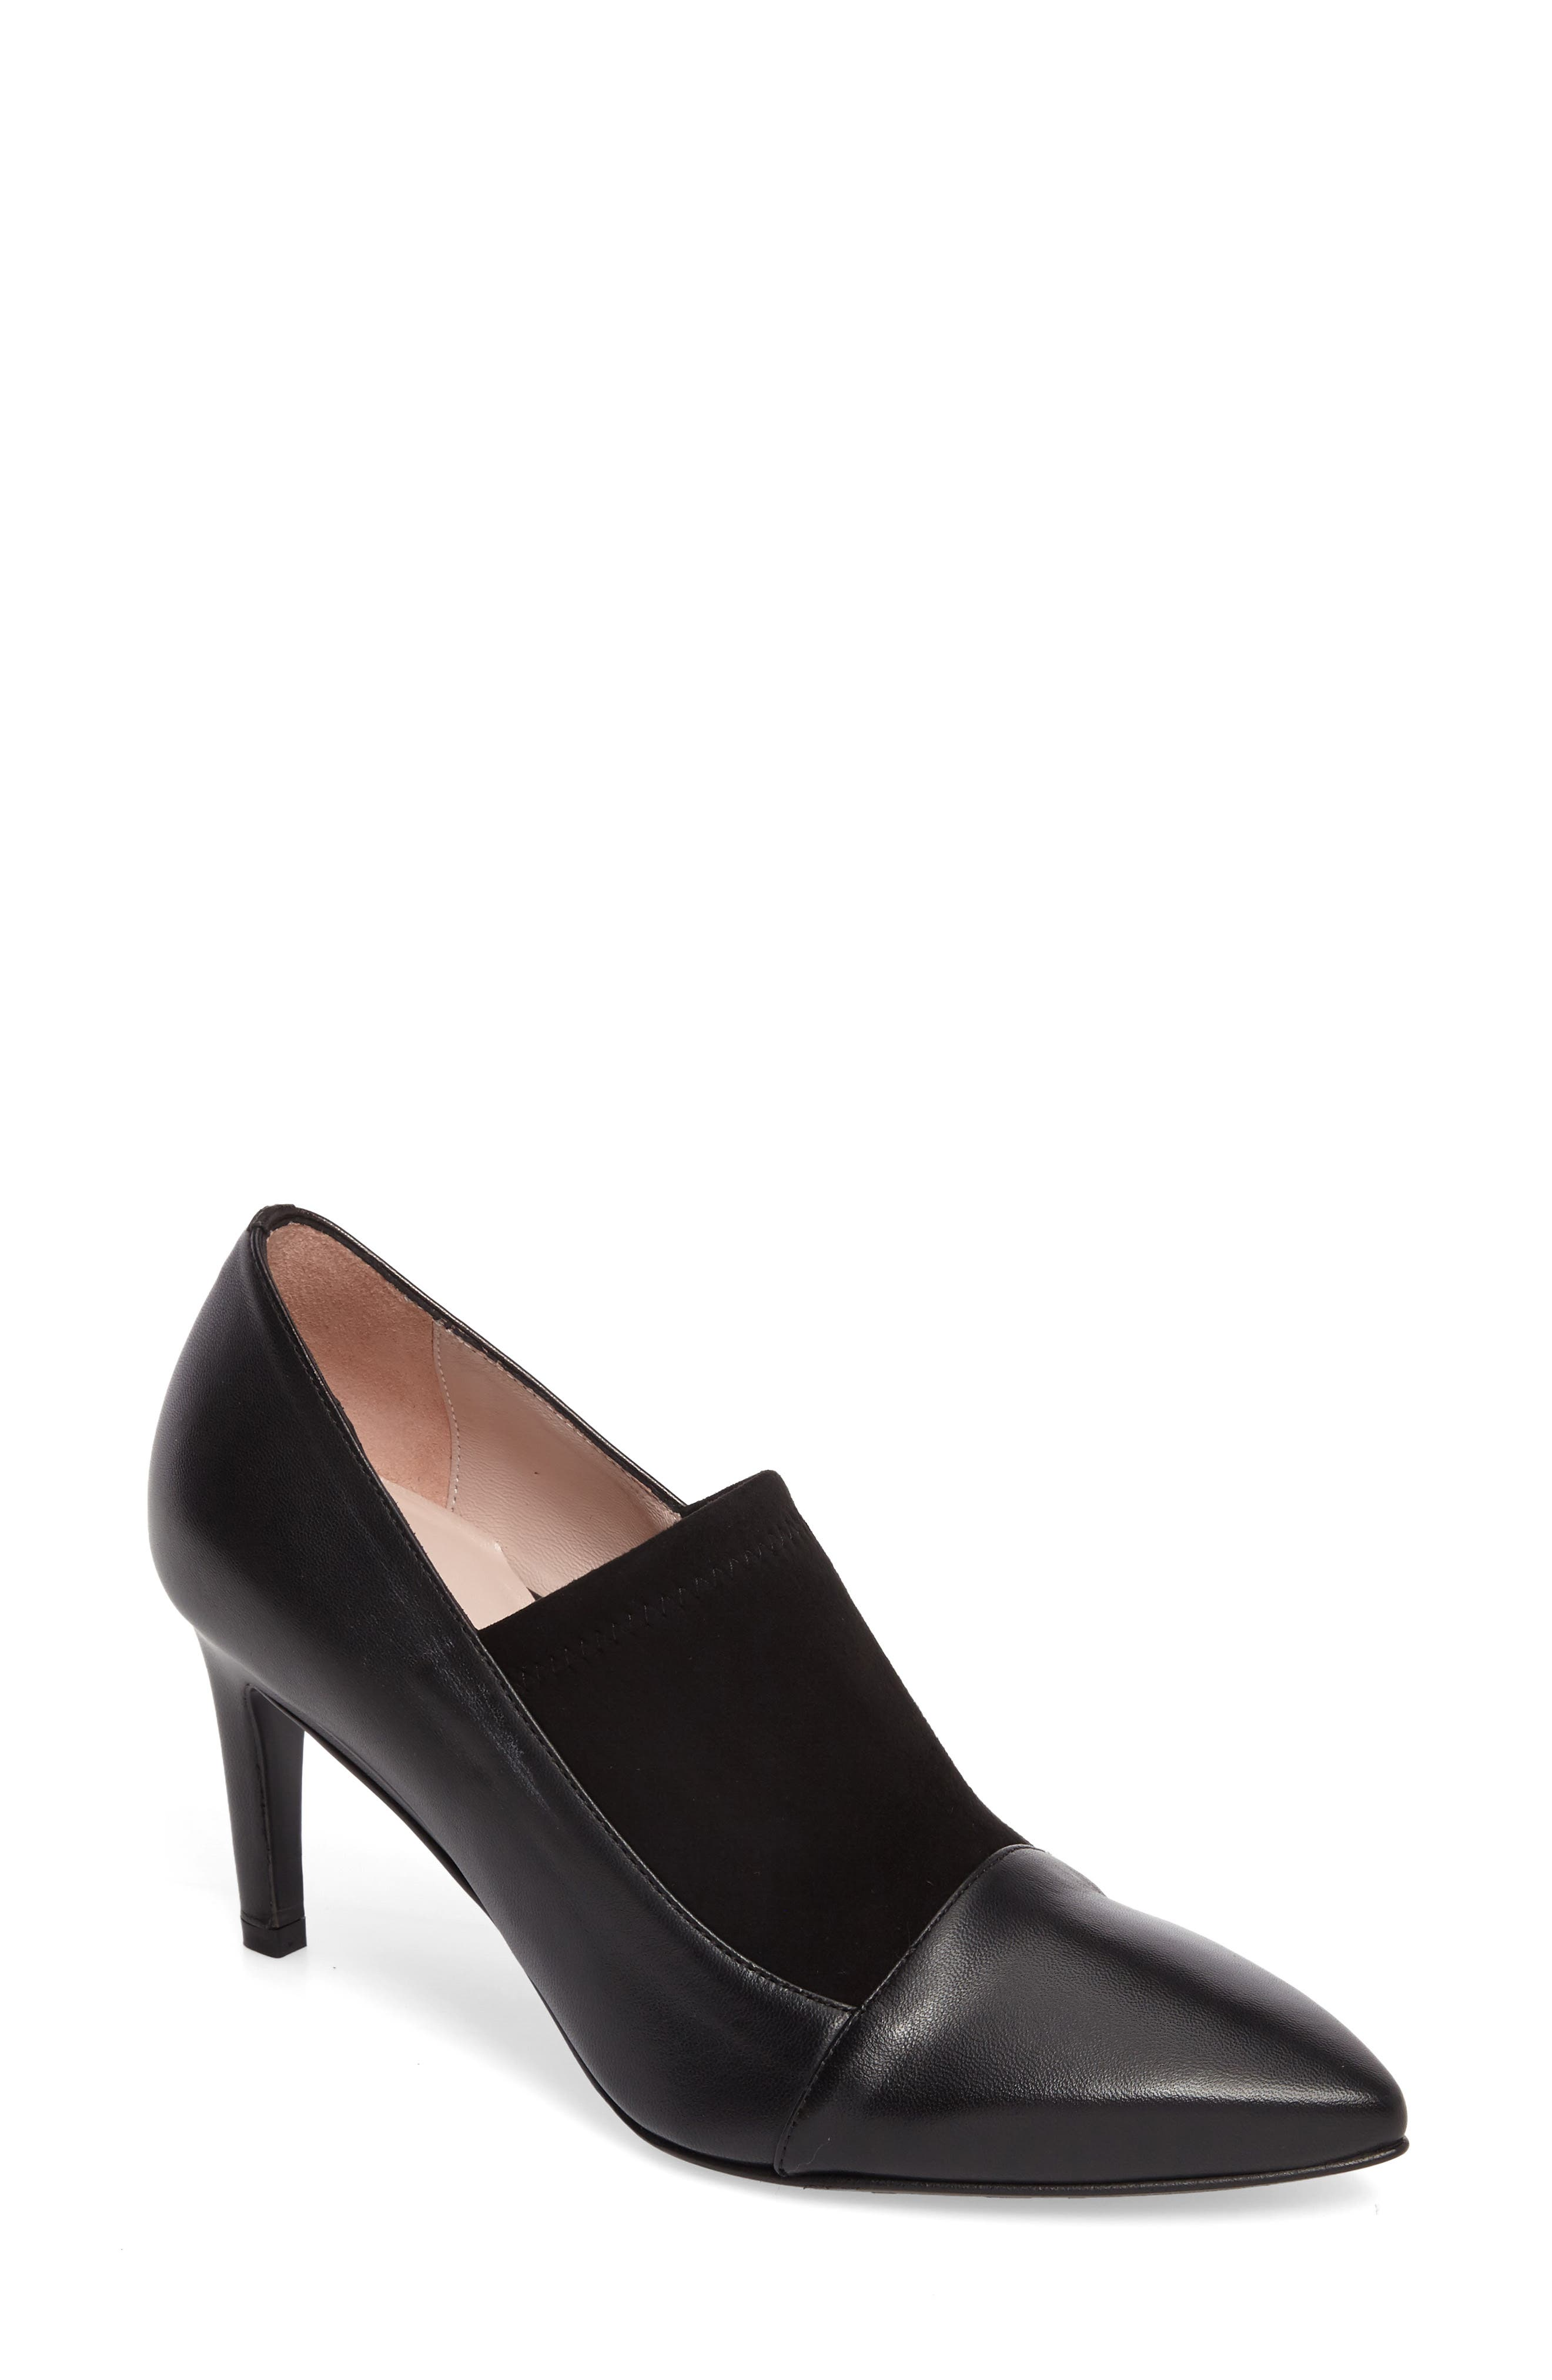 Ghita Pointy Toe Pump,                         Main,                         color, Black Leather